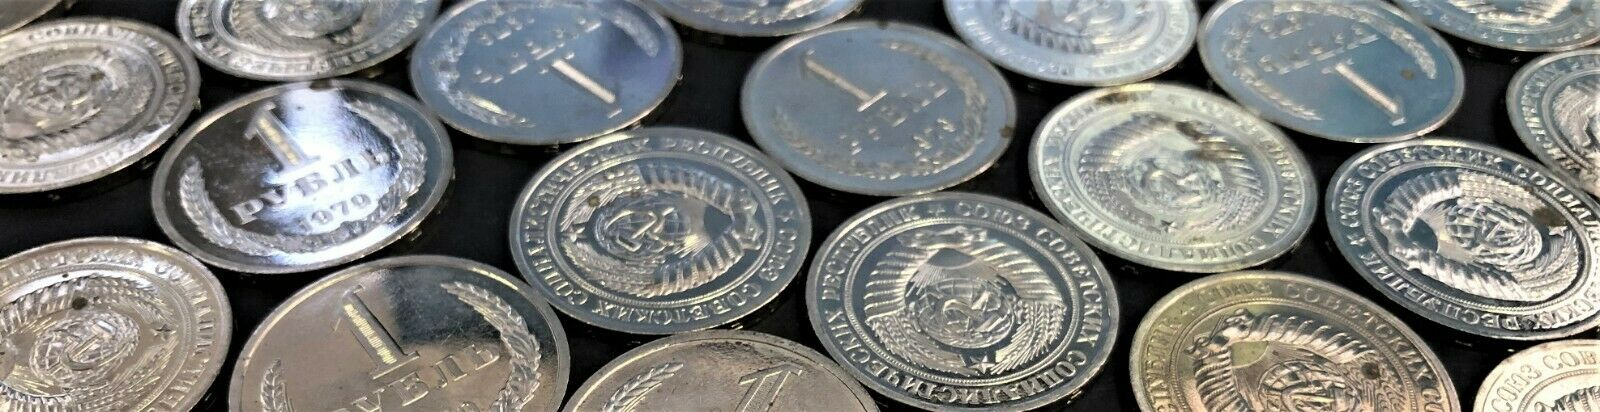 10 USSR RUSSIA 1 ROUBLE PROOF-LIKE COINS of 1979 KM 134a.2 EDGE LETTERING & DATE